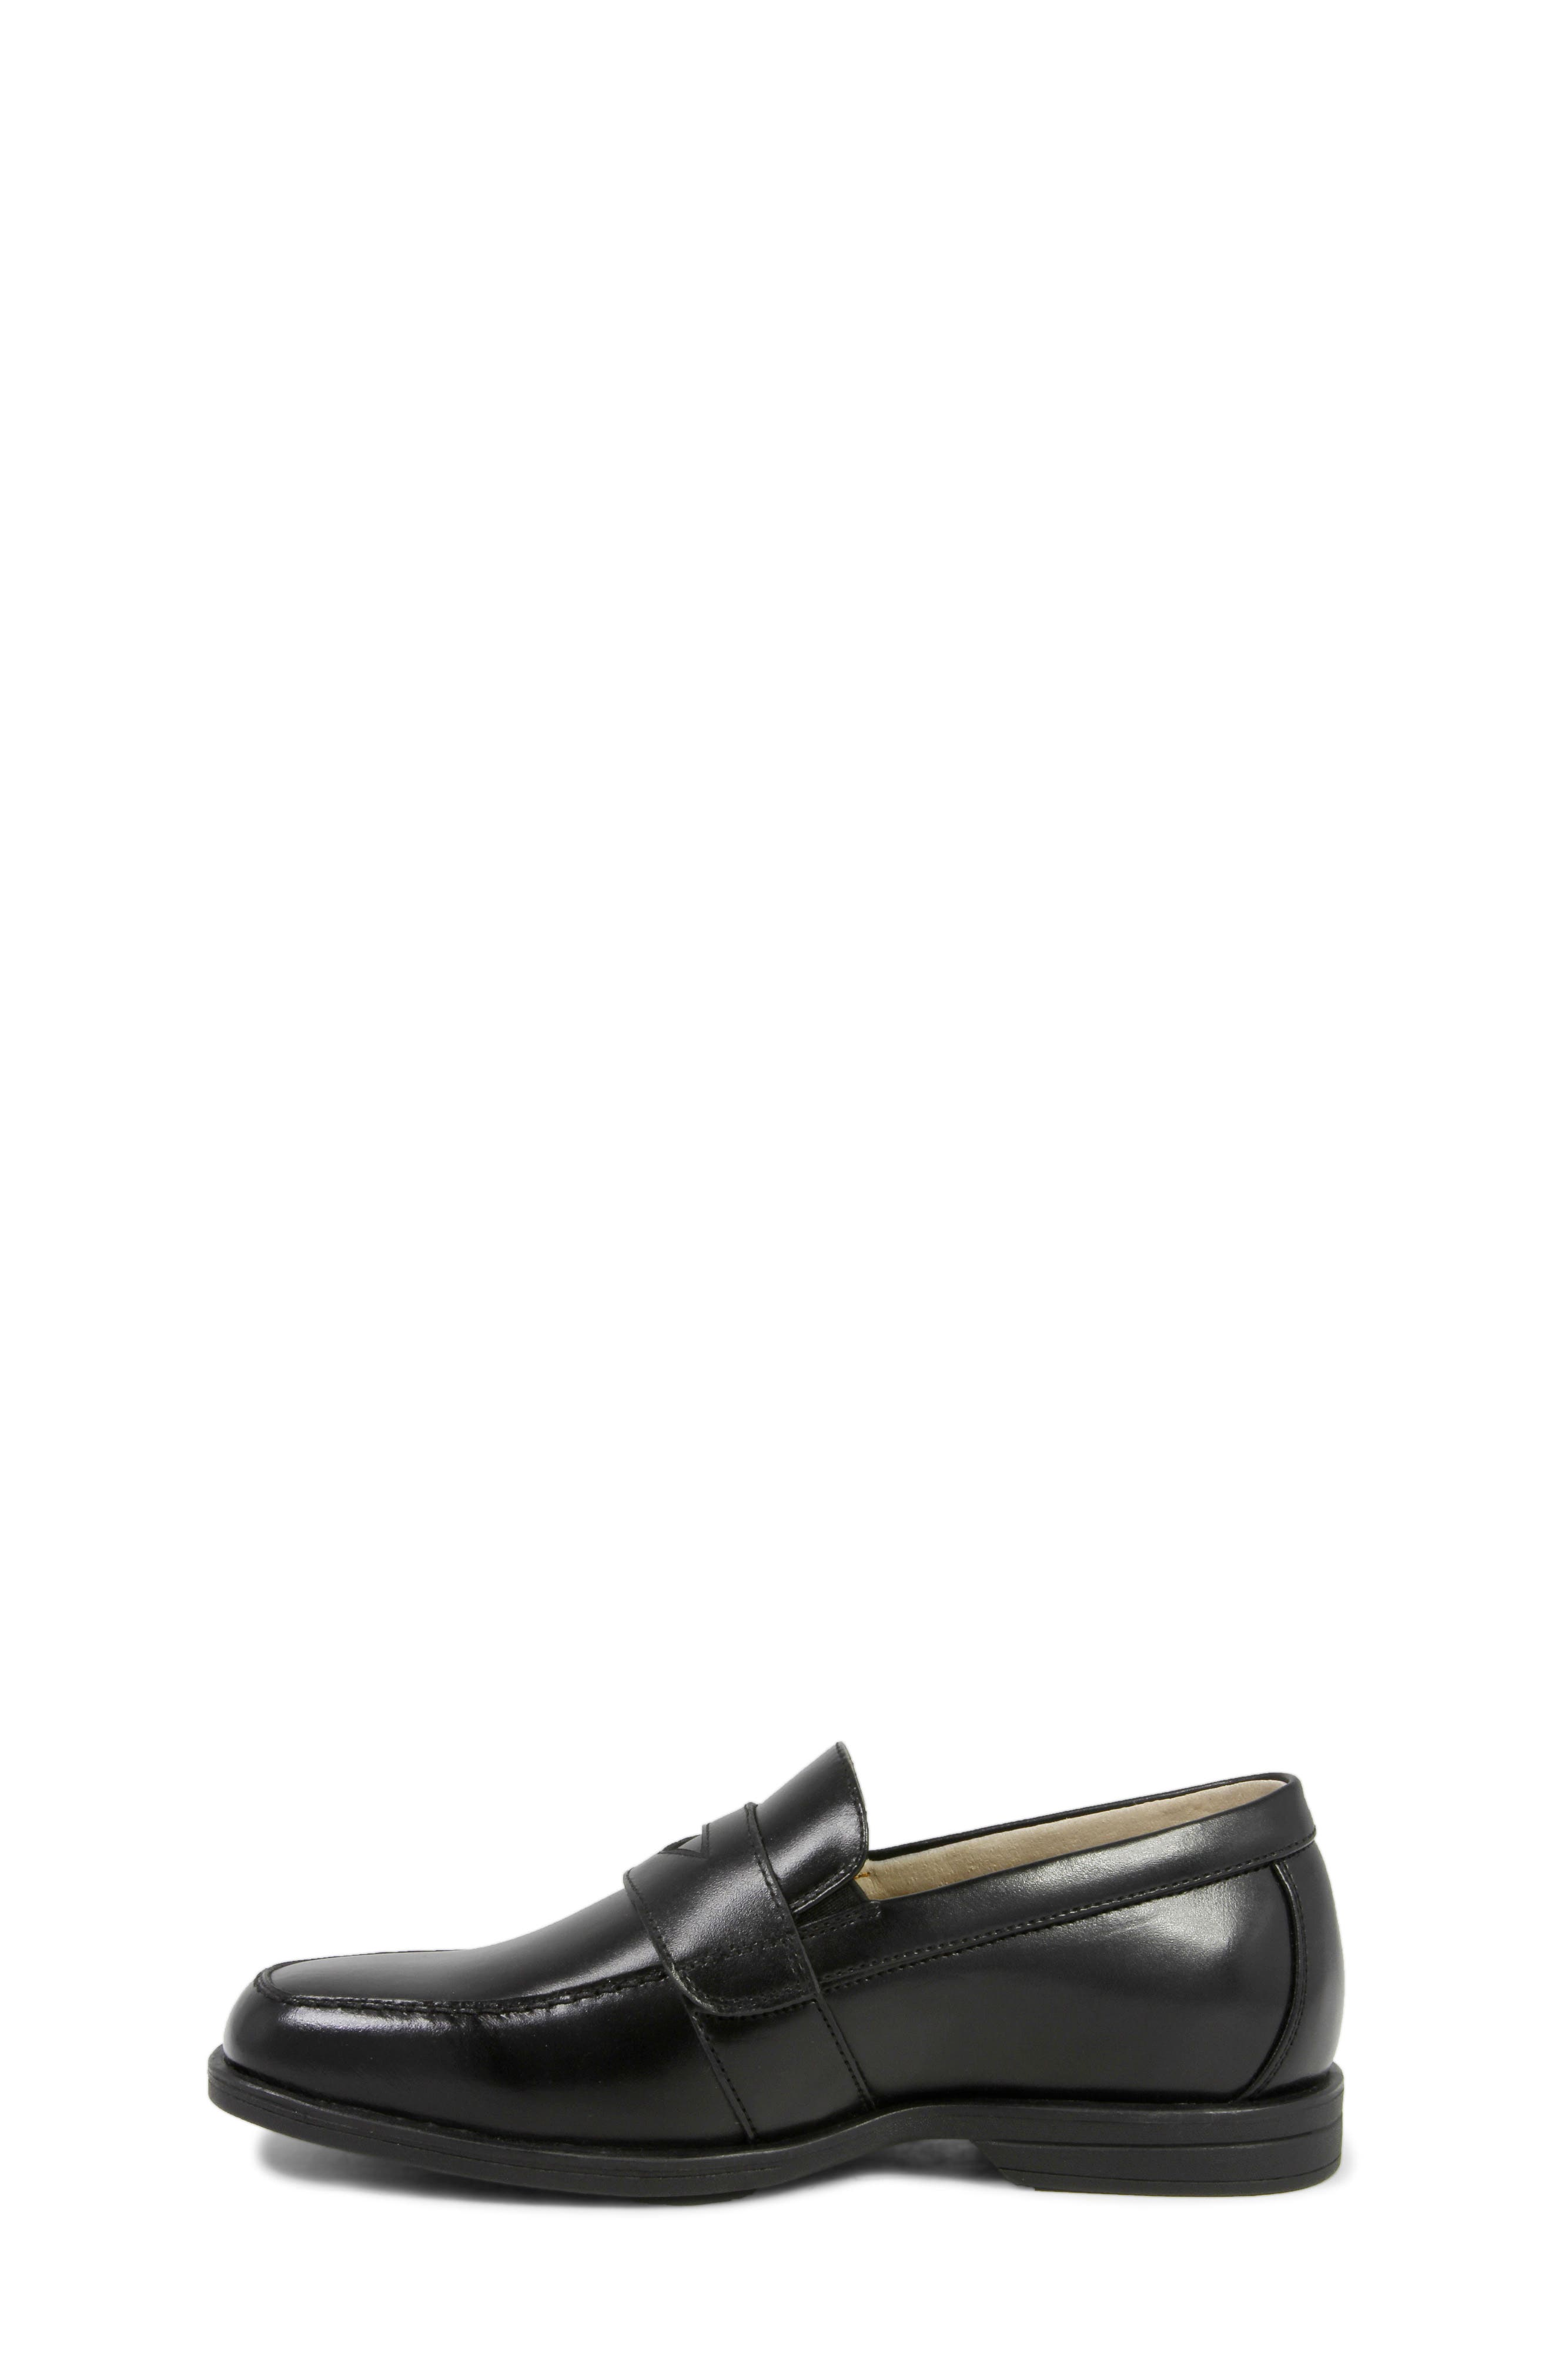 'Reveal' Penny Loafer,                             Alternate thumbnail 7, color,                             BLACK